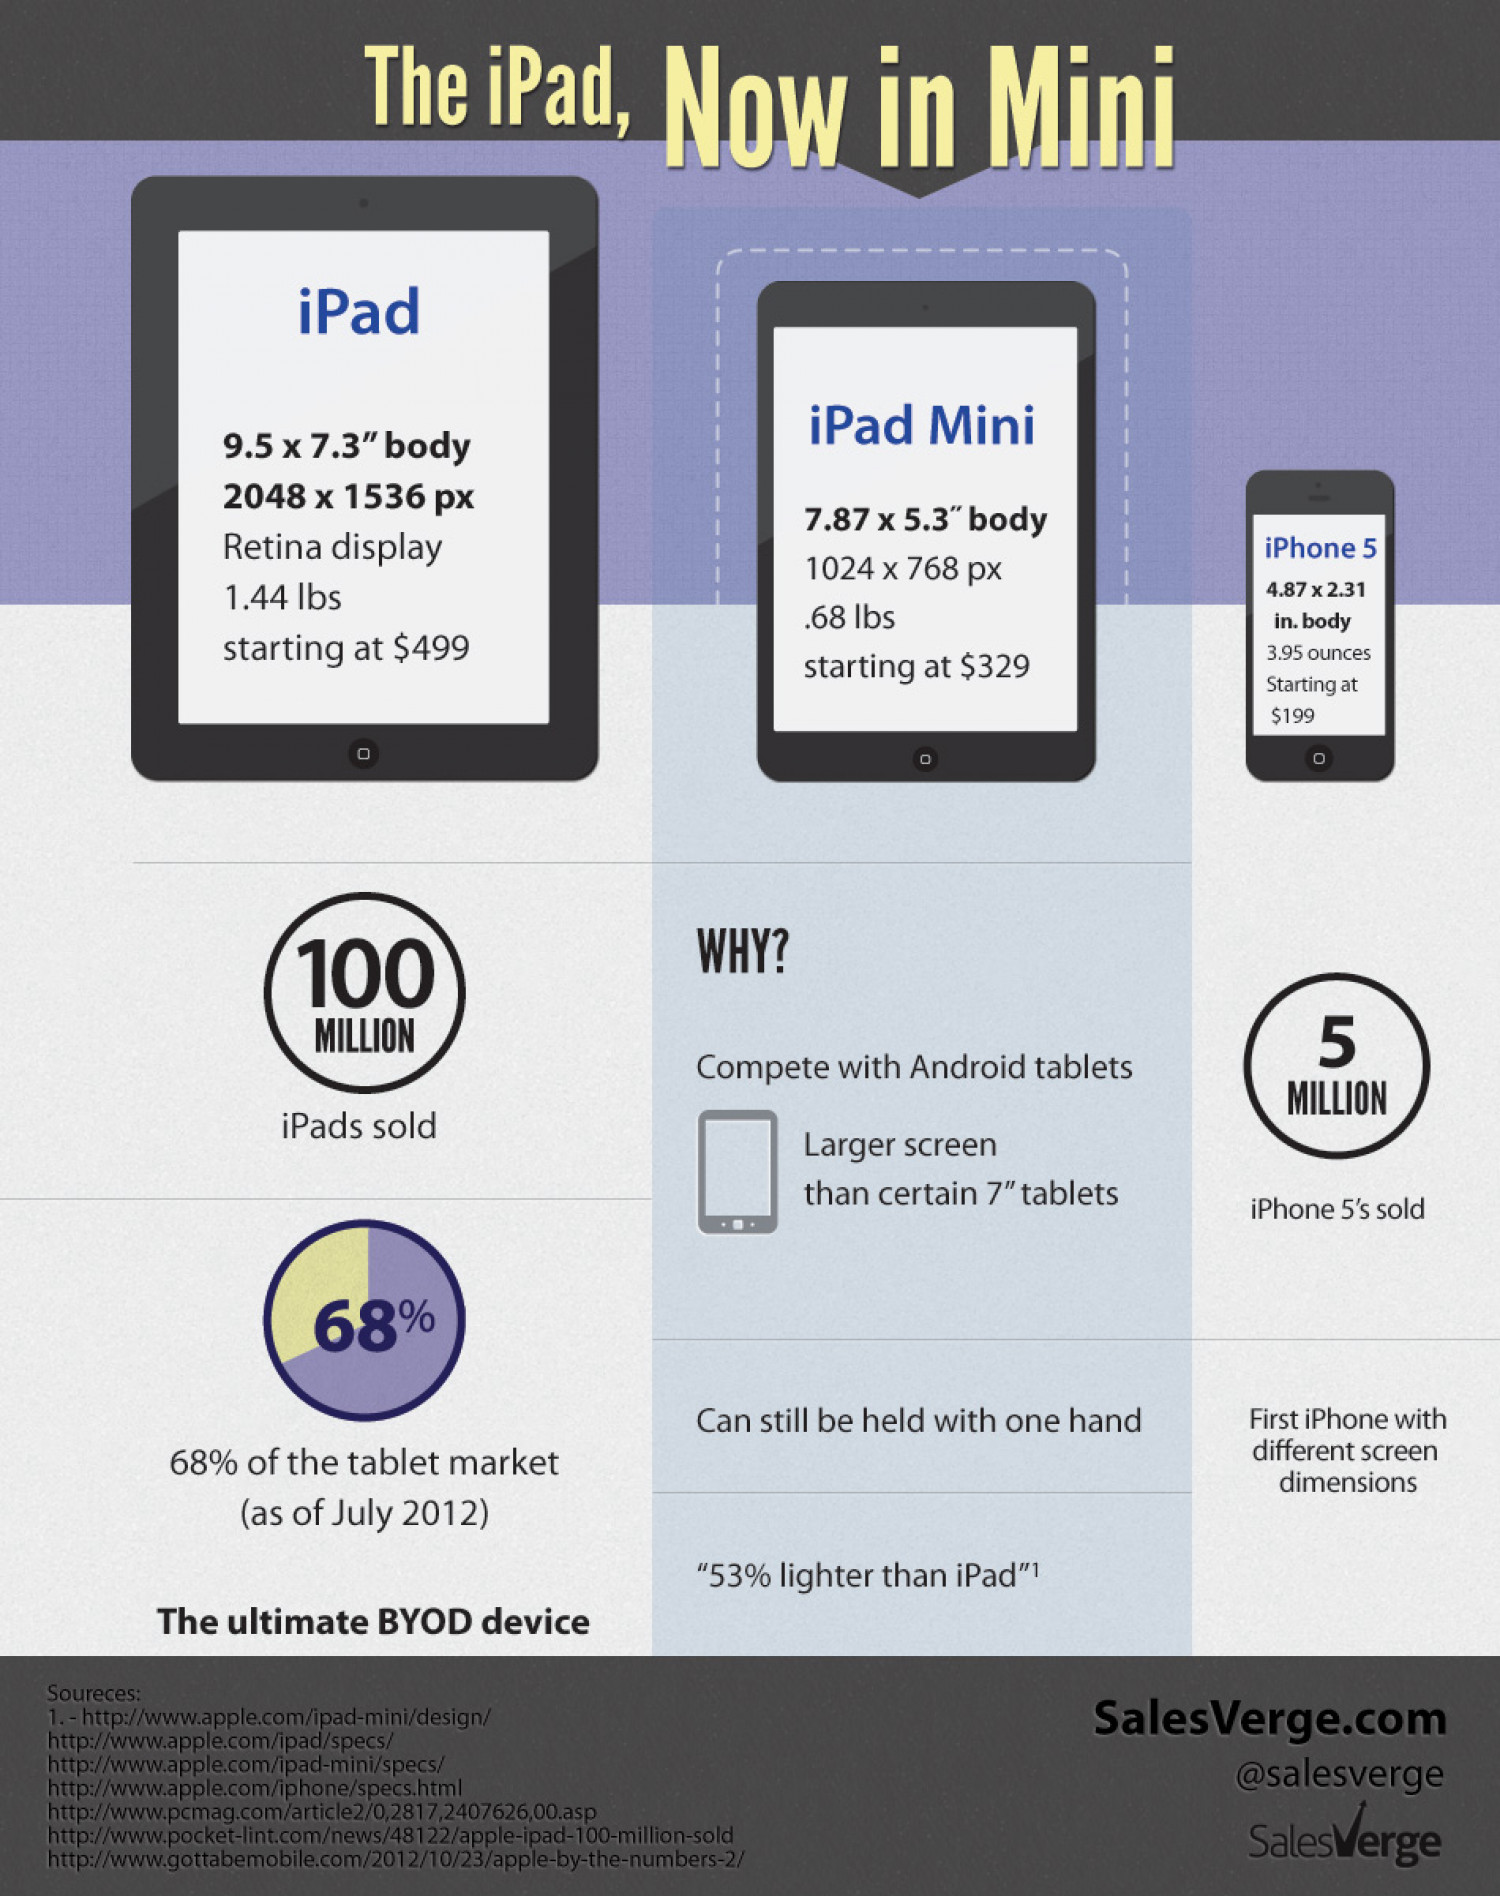 The iPad, Now in Mini Infographic